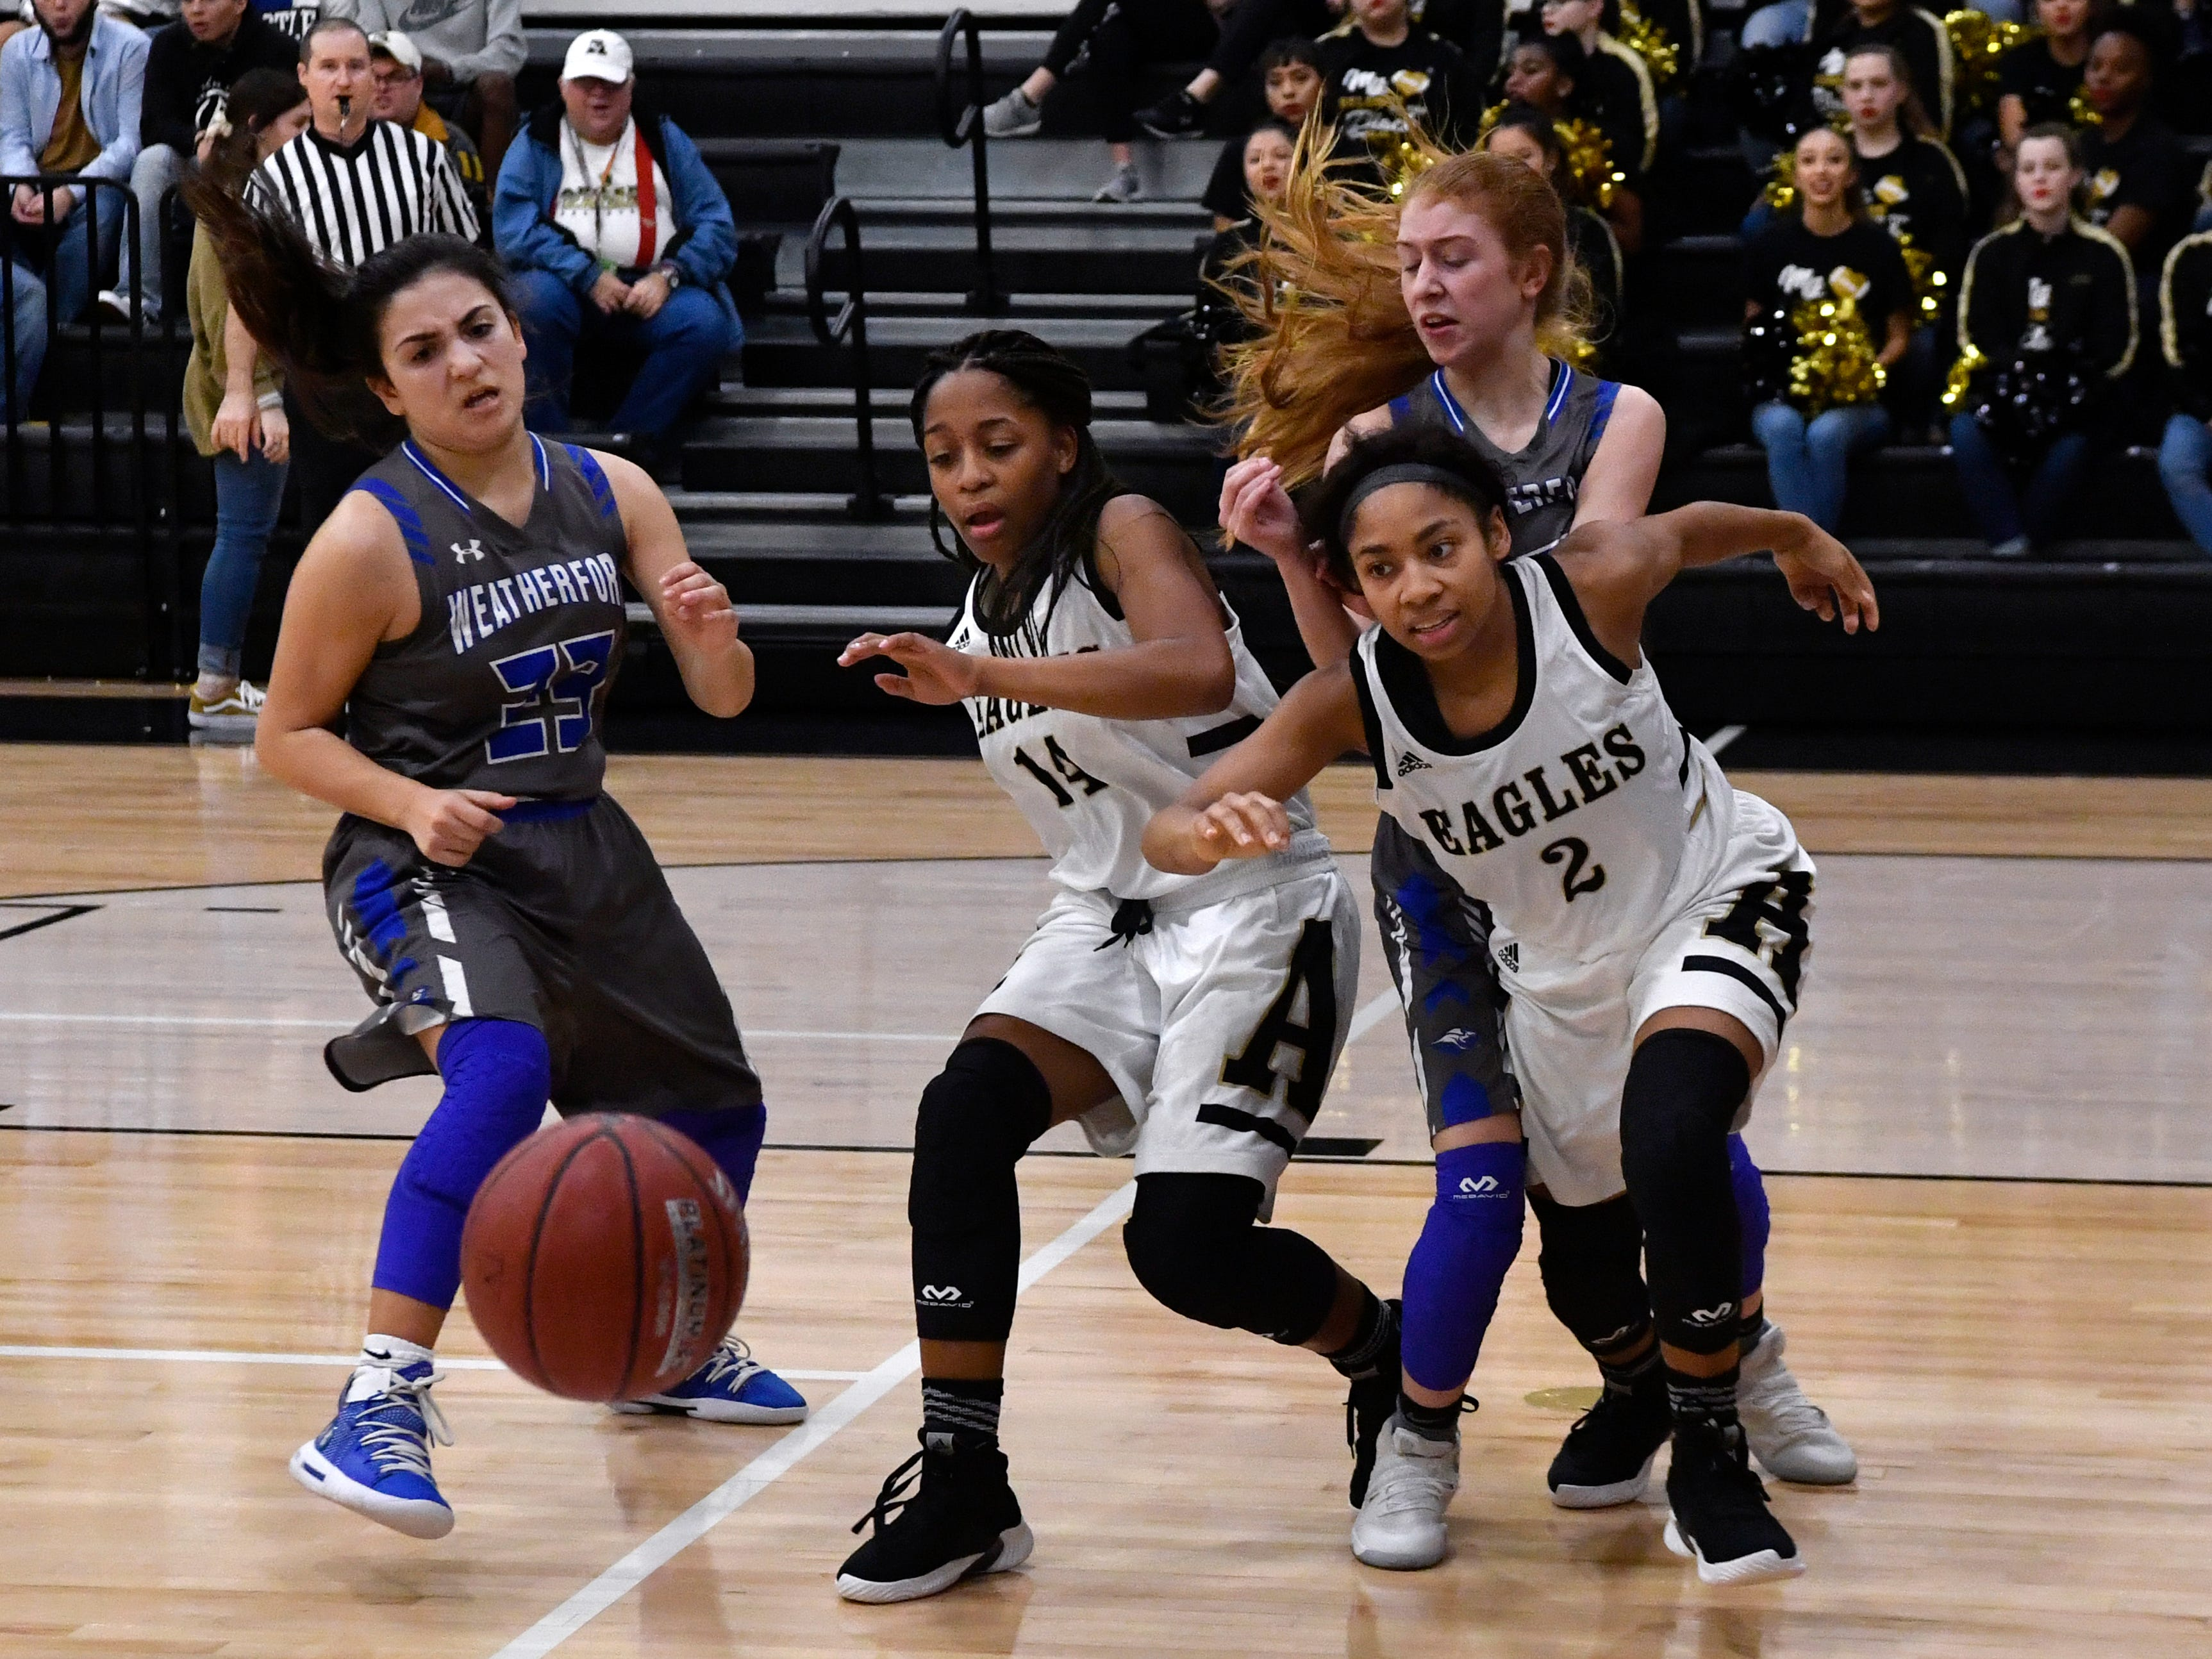 Lady Eagles Brooklin Ellis (right) and Tavia Wilson chase the ball during Friday's game against Weatherford Jan.11, 2019. Final score was 51-38, Abilene.